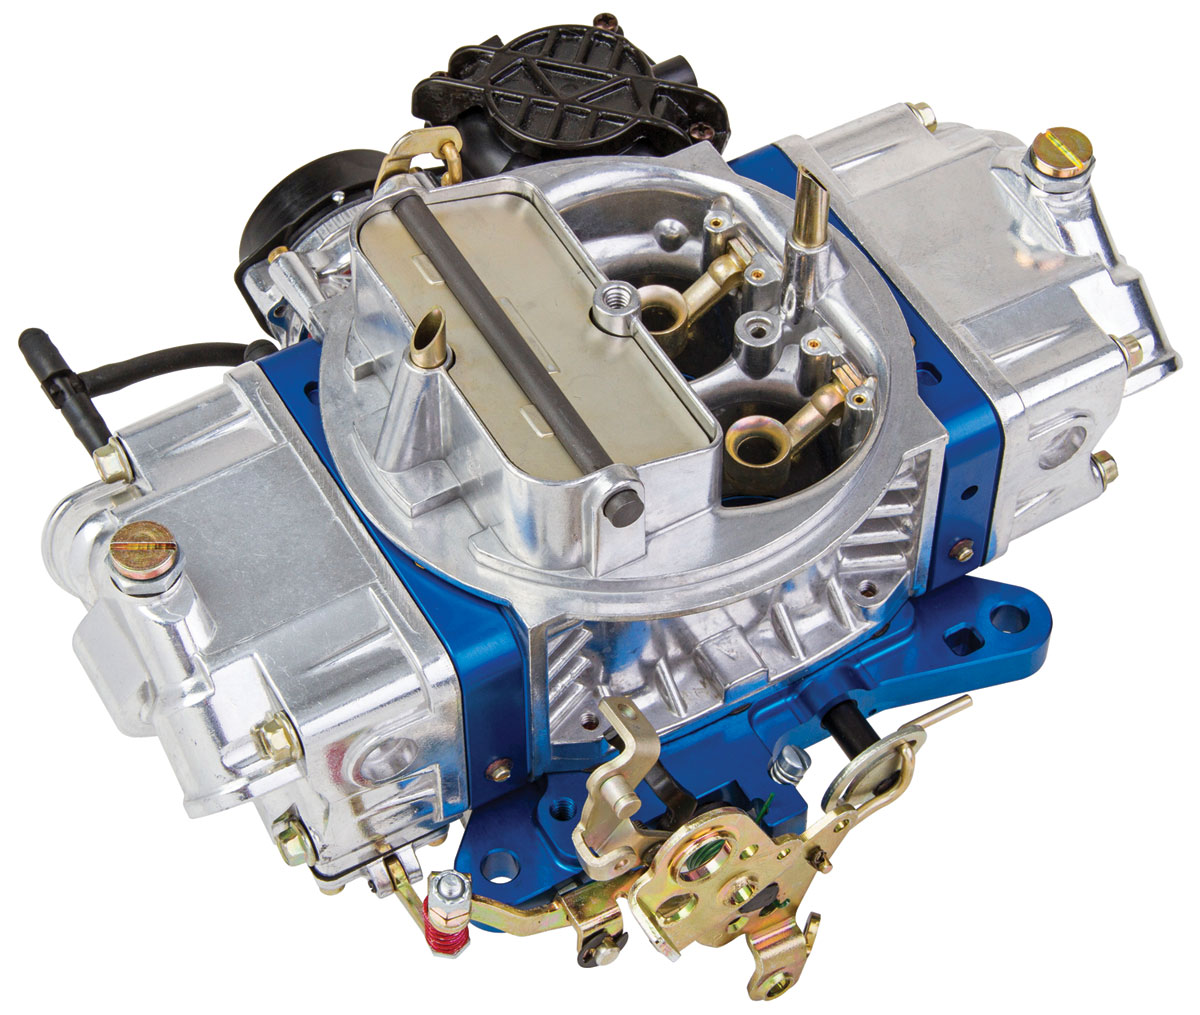 Carburetor, Holley, 770 CFM Ultra Street Avenger, Blue Metering Blocks